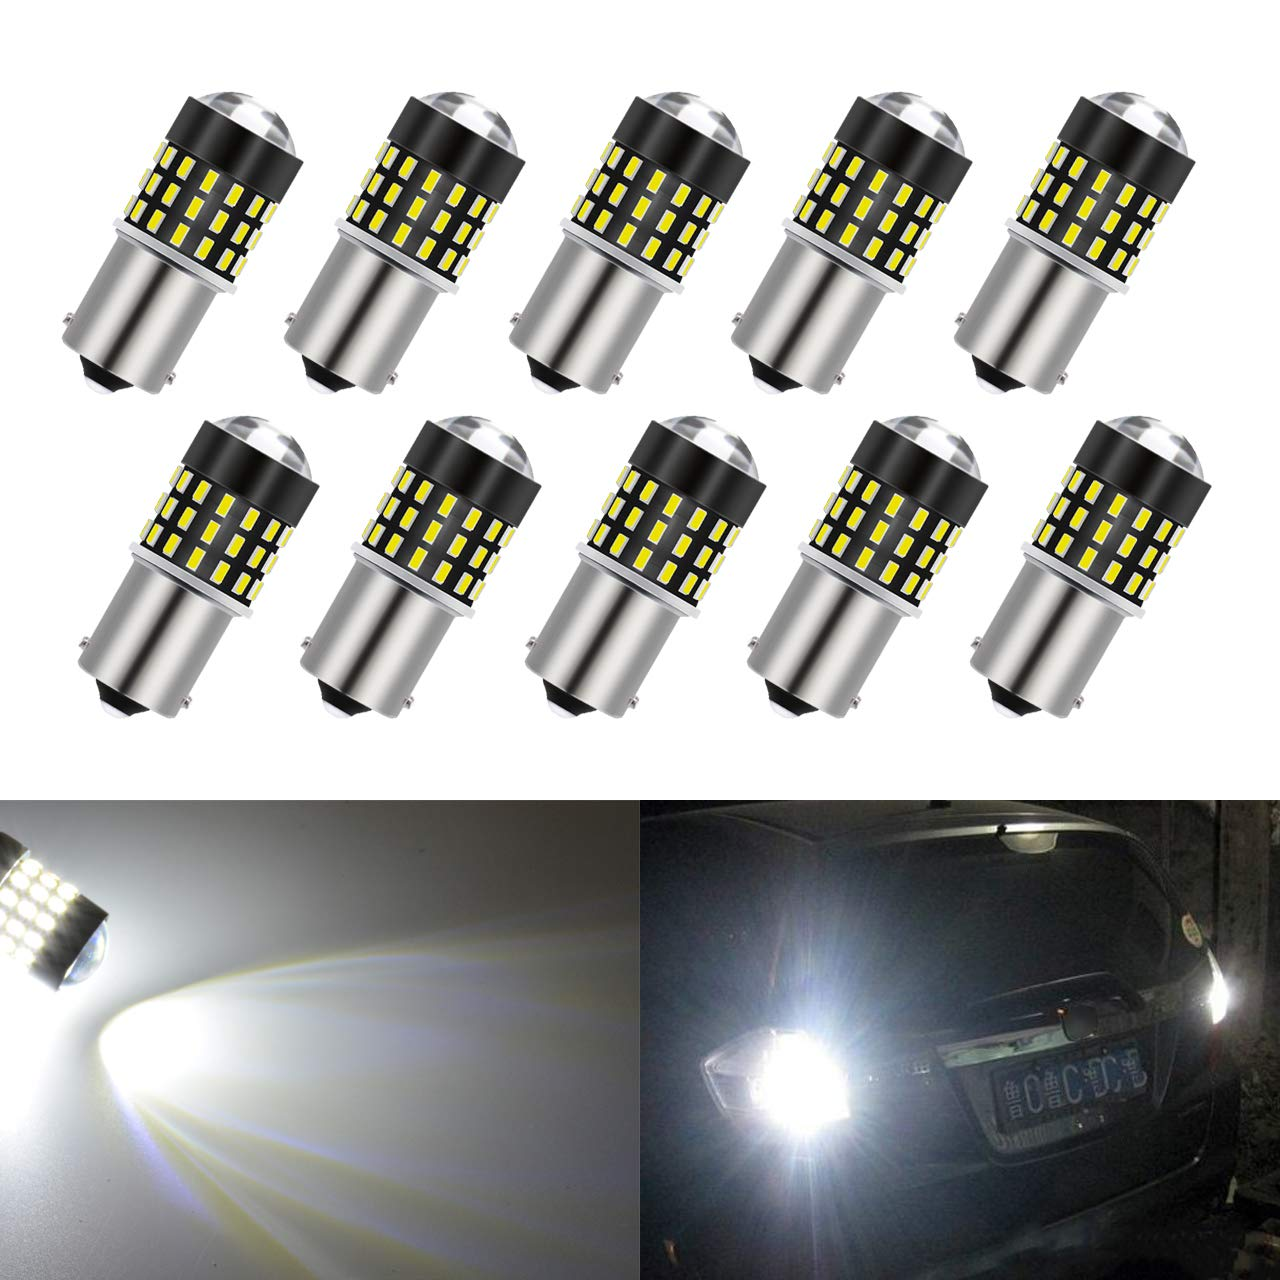 KATUR 2pcs Super Bright 3157 3047 3057 3057A 3155 3157A 3014 54SMD Lens LED Replacement Bulbs Turn Brake Signal Tail Back Up Stop Parking RV Lights 3.1W DC 12V White 2AM-CL-373-3157-White